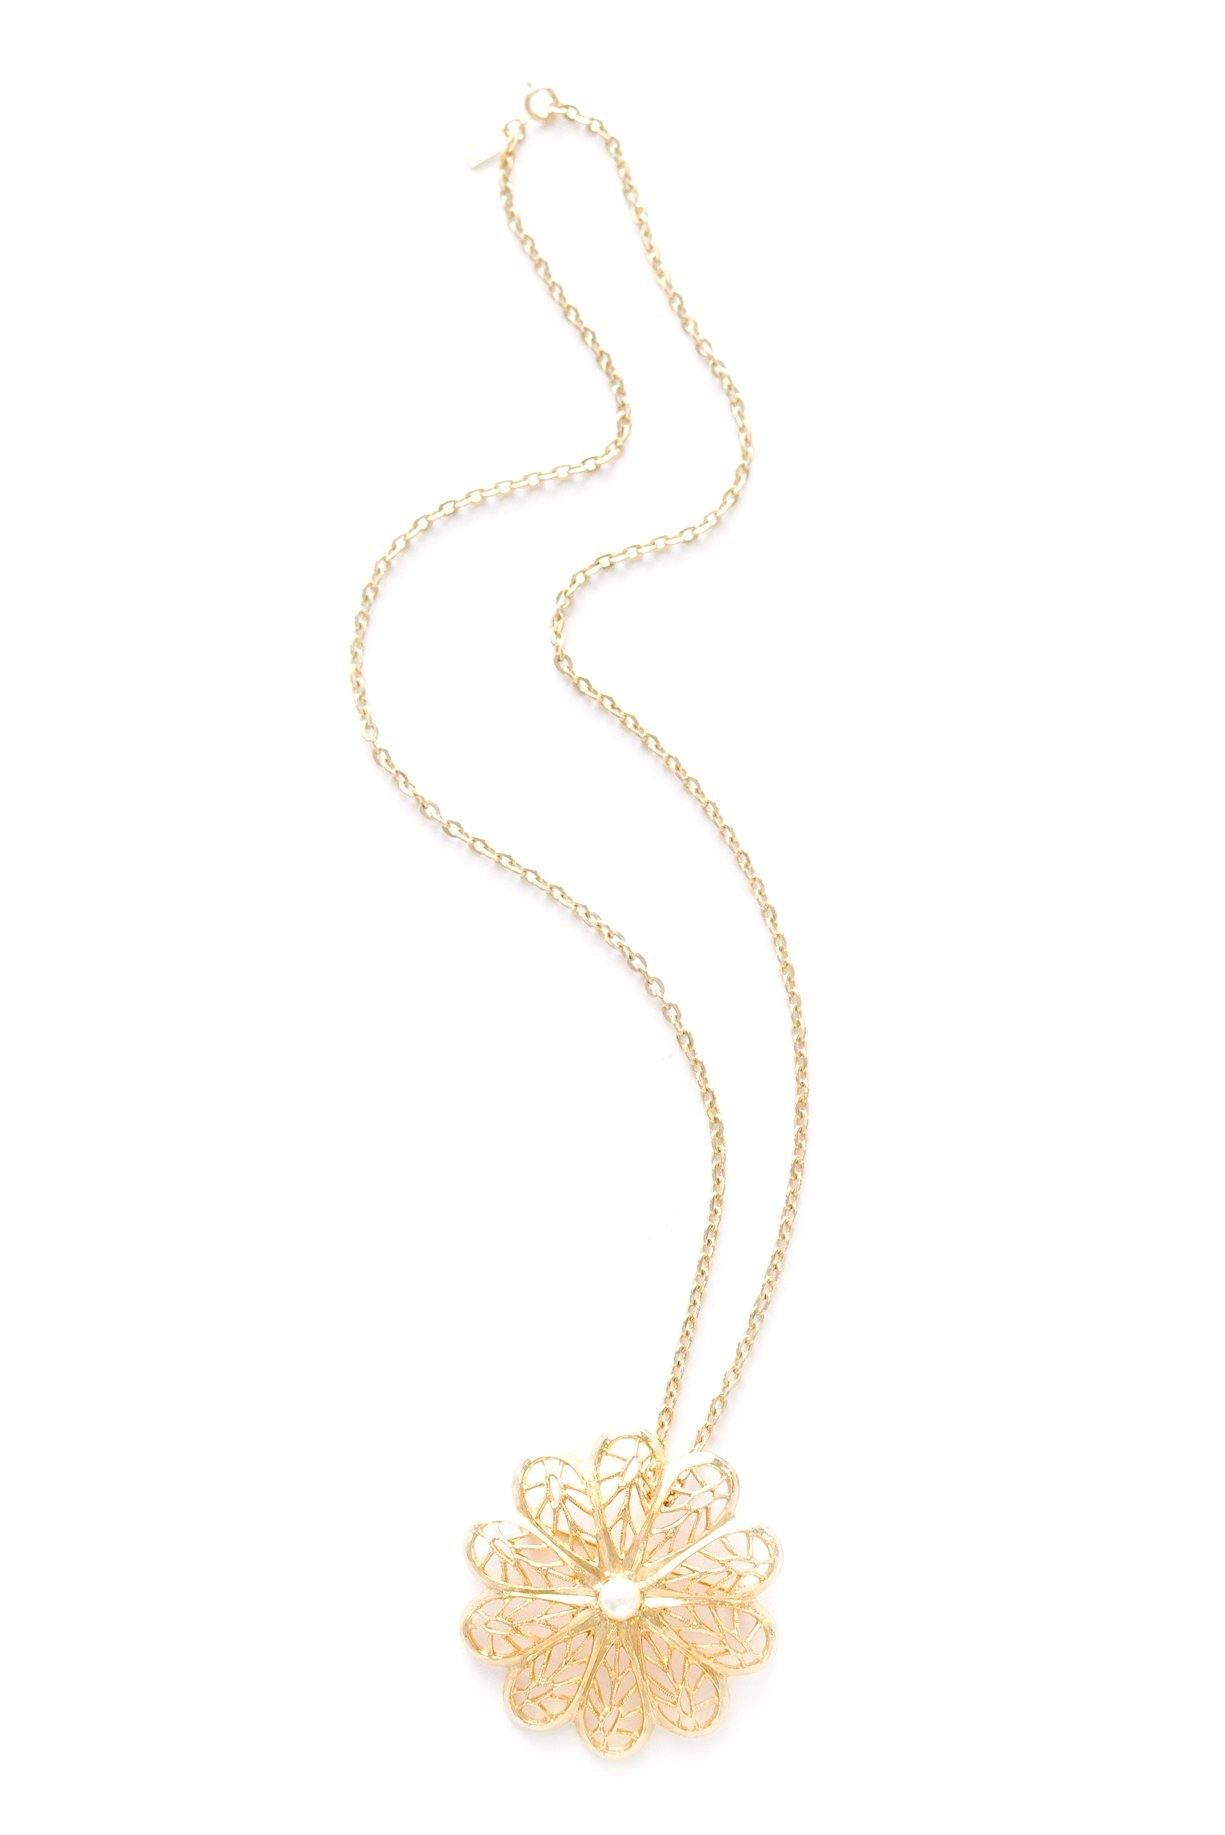 Pearl pendant necklace from Sweet & Spark.